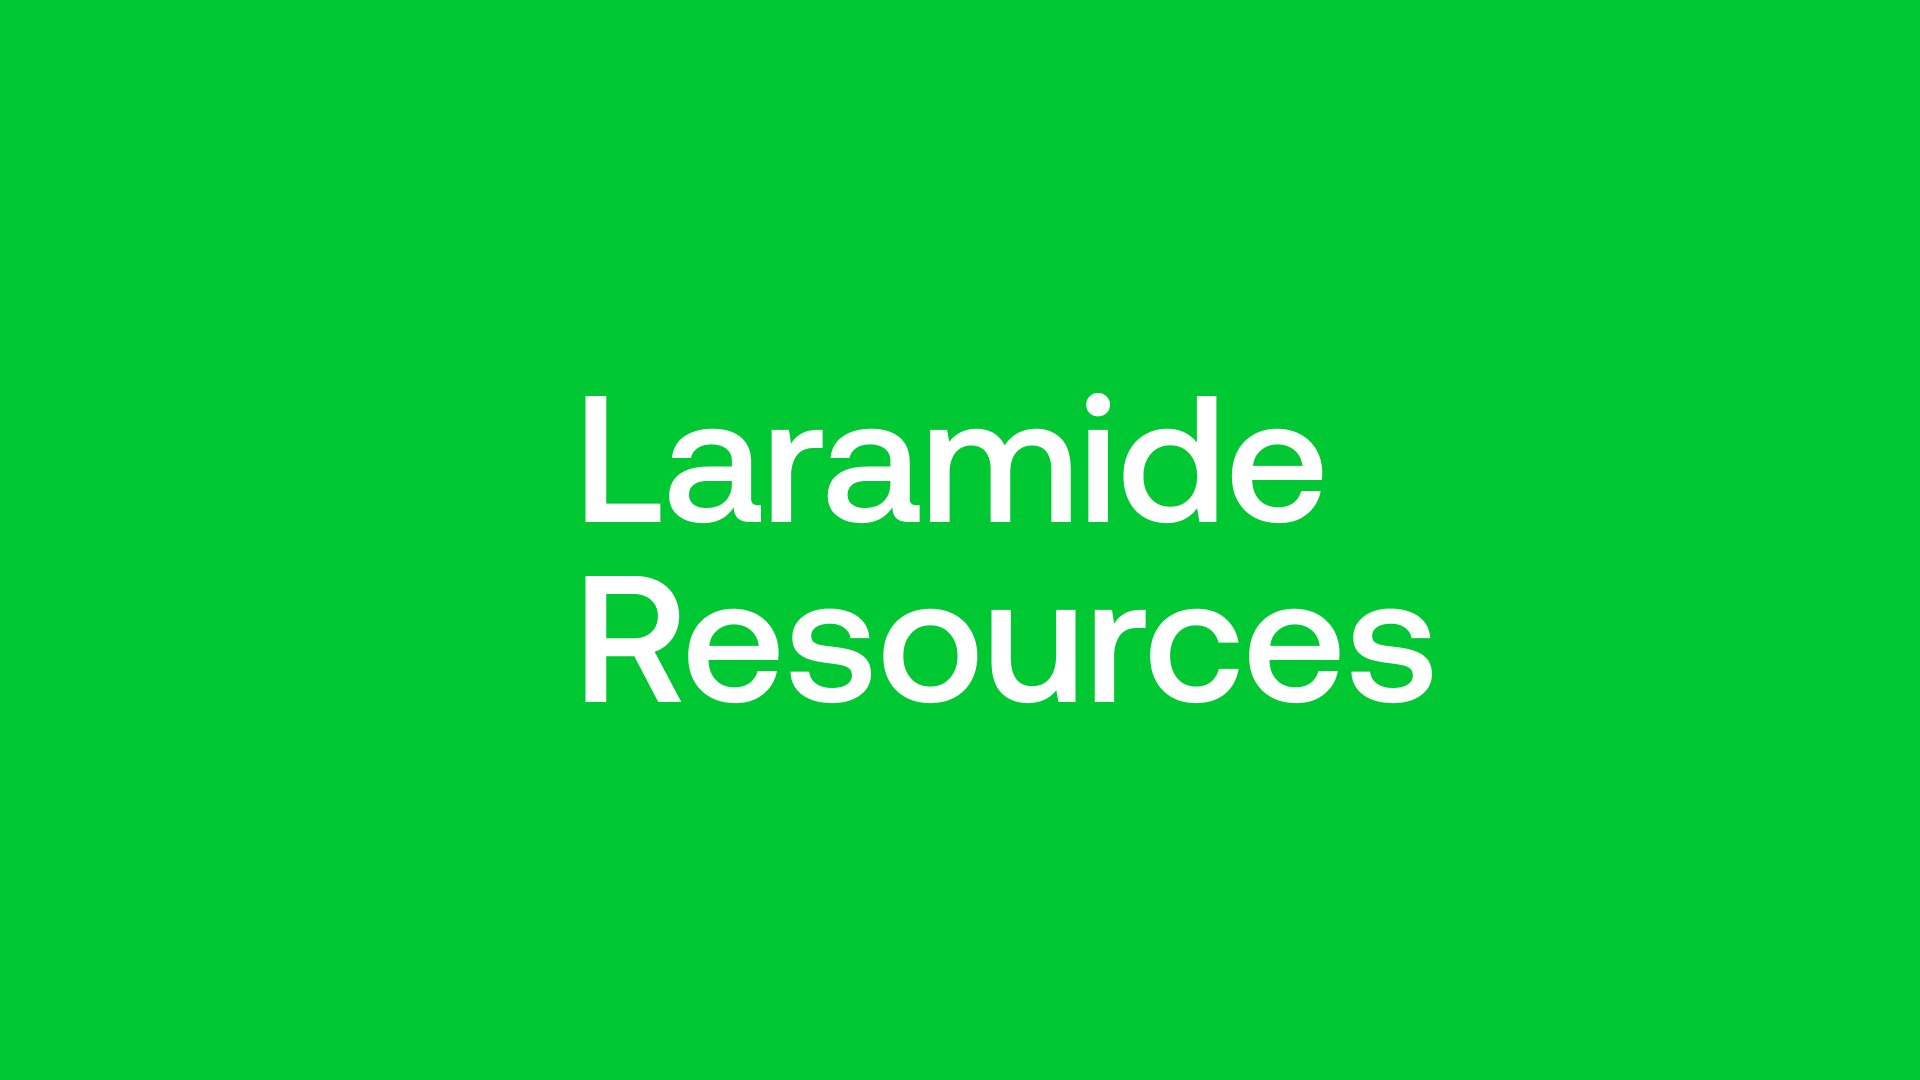 Laramide Resources (LAM) - With Uranium Timing is Everything